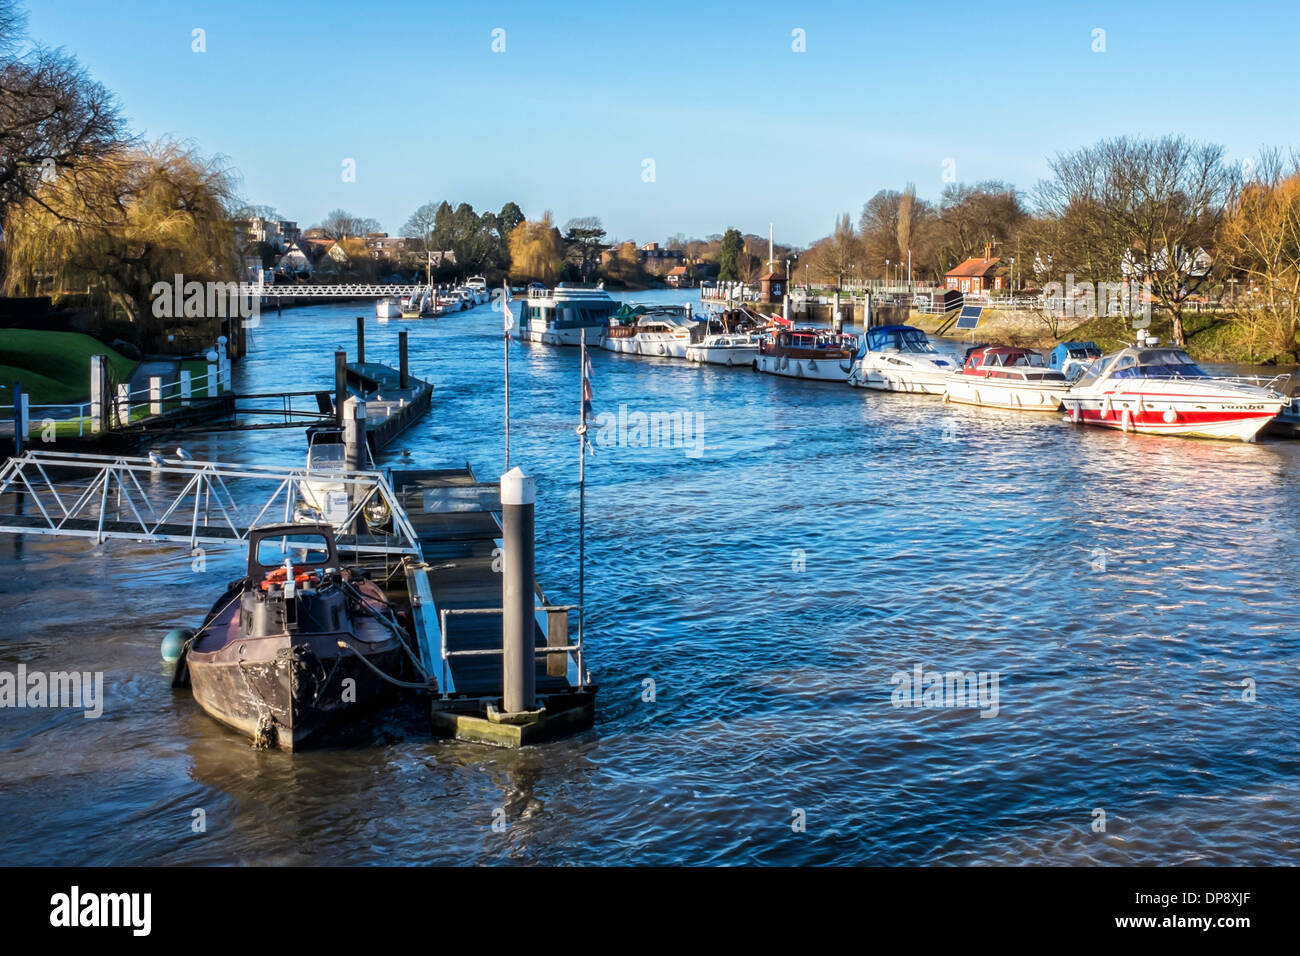 Boats on the Thames river at the Teddington Lock, Greater London Stock Photo